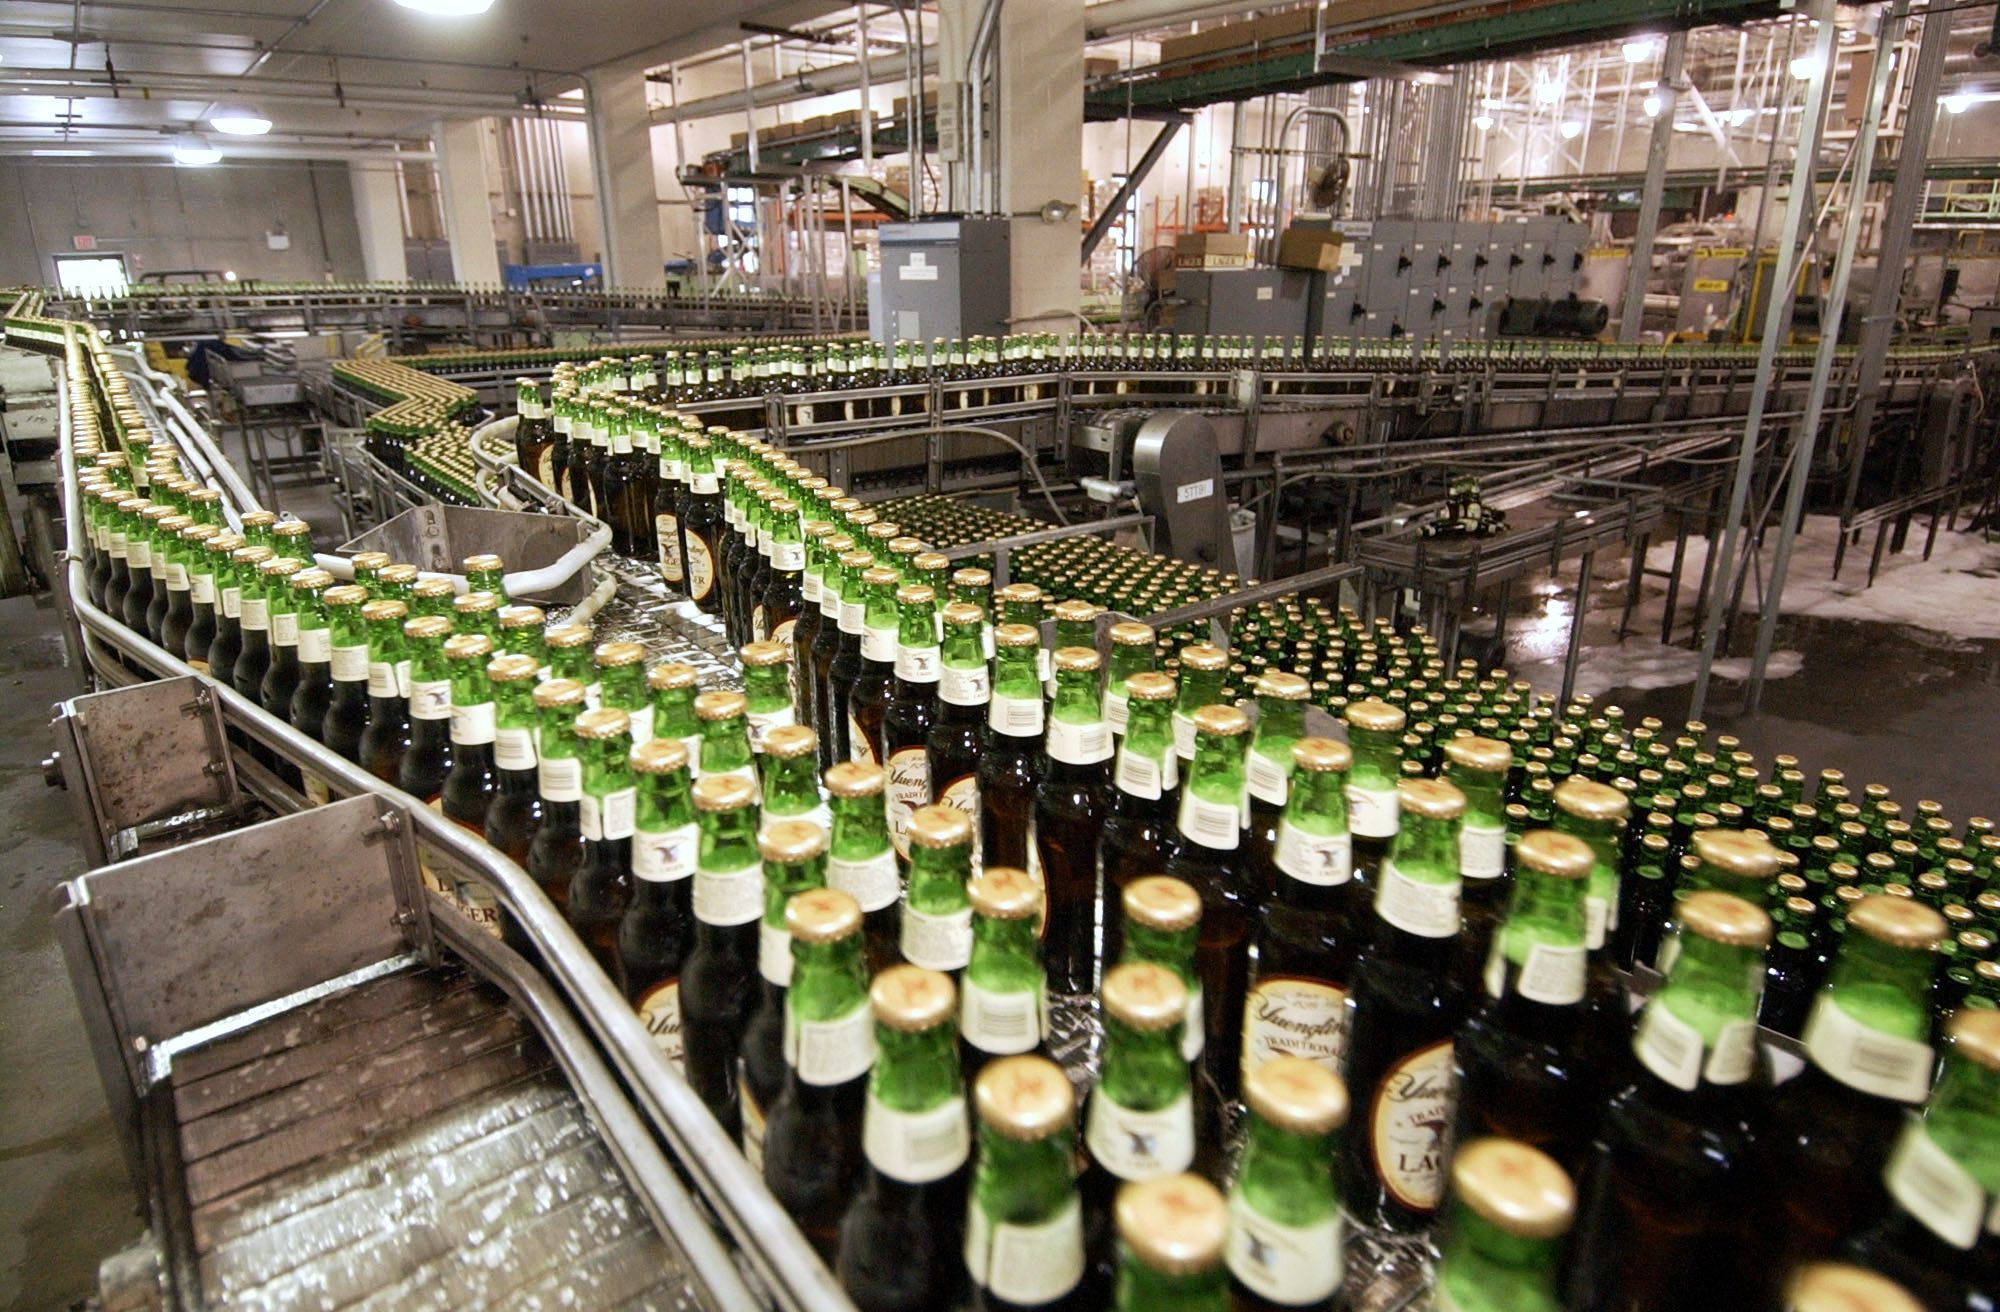 Bottles of lager move through the assembly line at the Yuengling brewery in Pottsville, Pennsylvania.